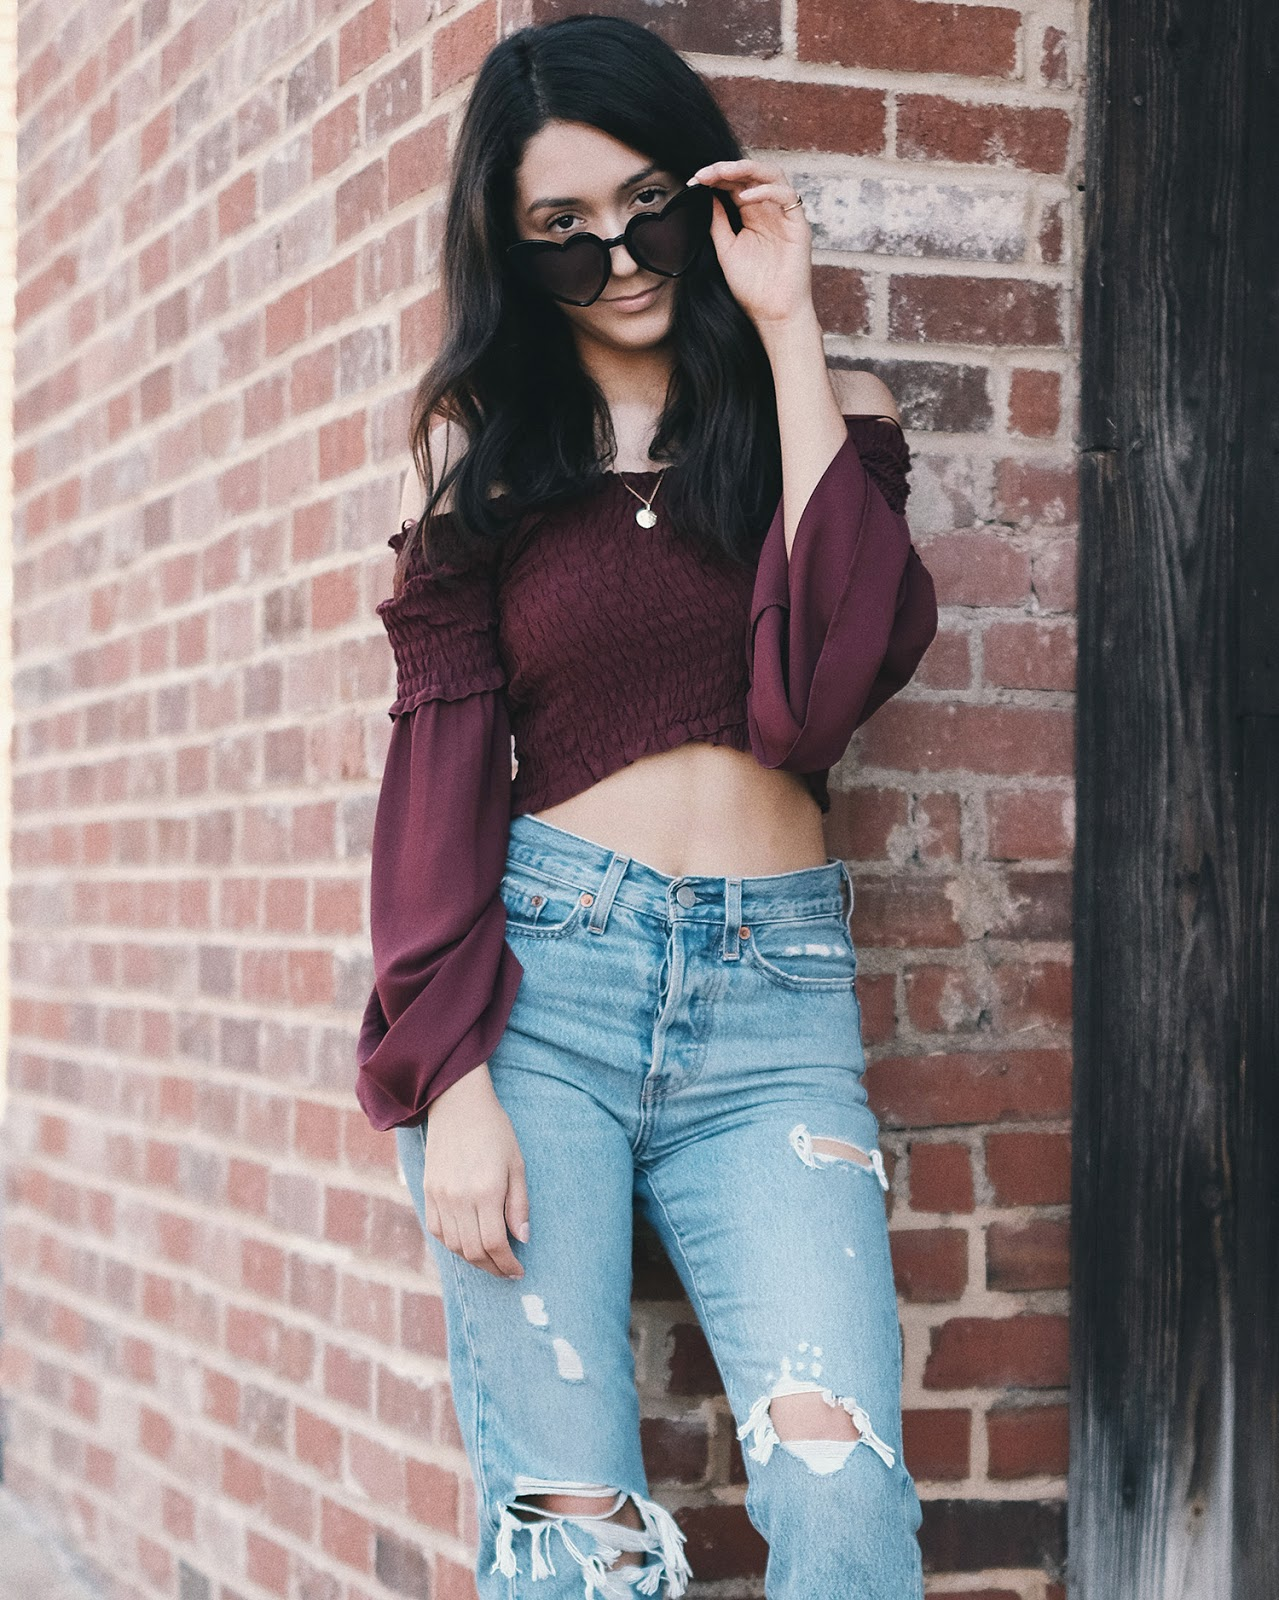 levis wedgie authentically yours, rue21 burugndy off the shoulder top, heart eye sunglasses